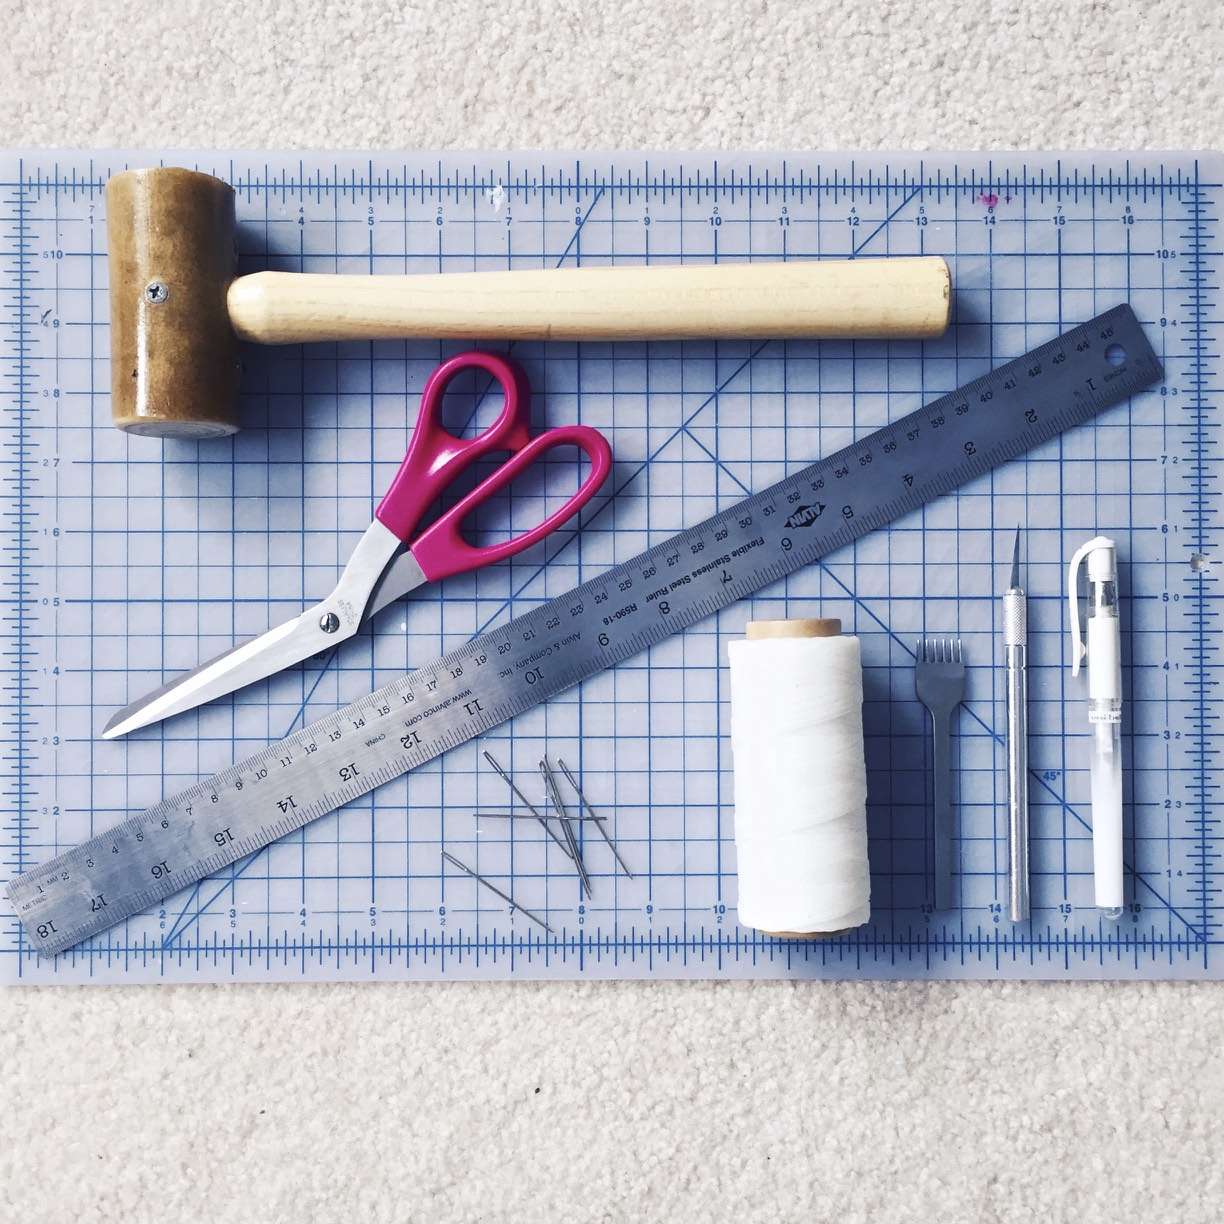 Waxed-nylon thread, chisel, rawhide mallet, X-Acto knife, white pen, leather needles, self-healing mat, fabric scissors, ruler